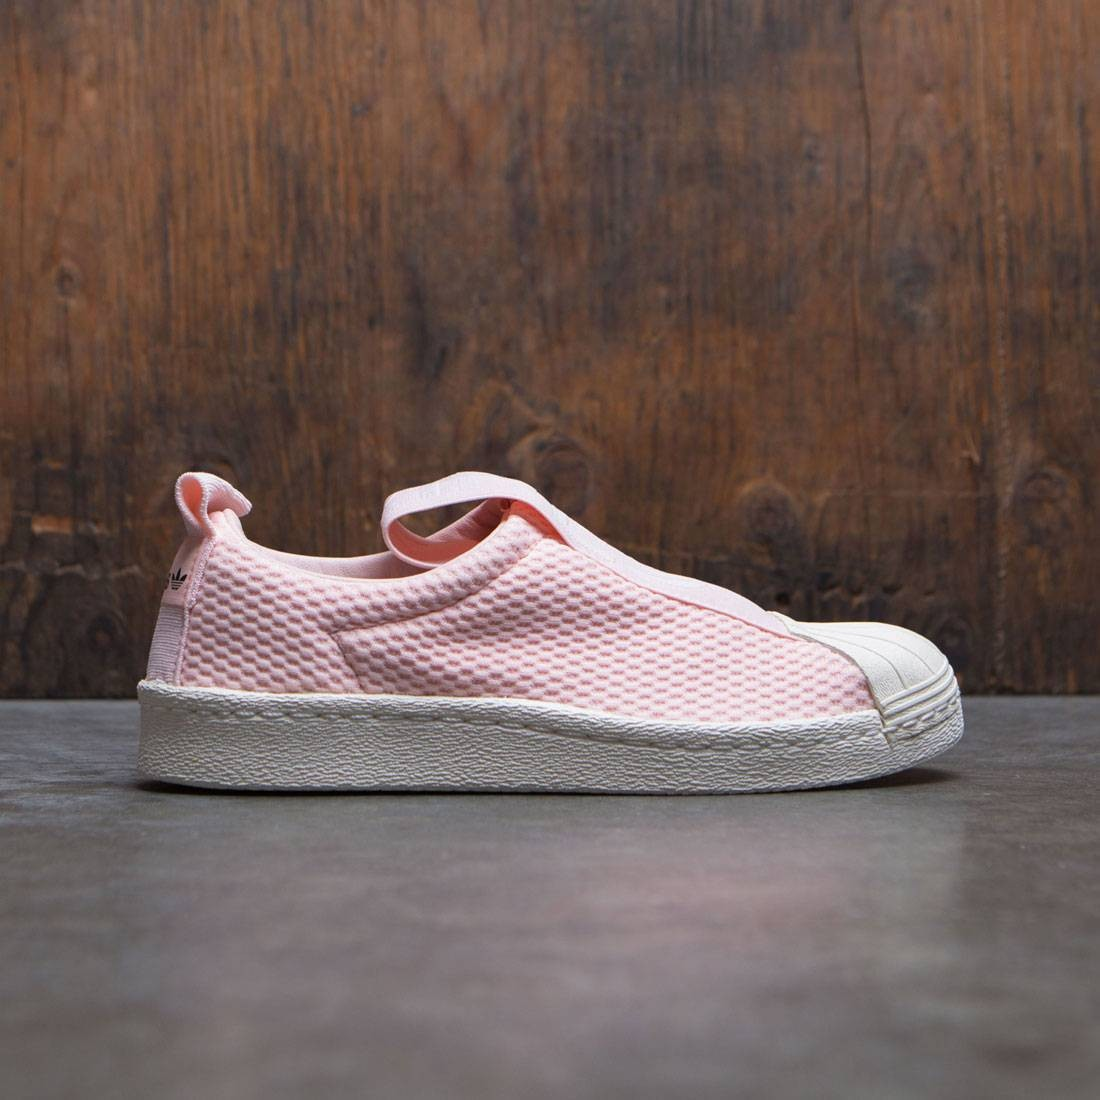 adidas superstar pink off white